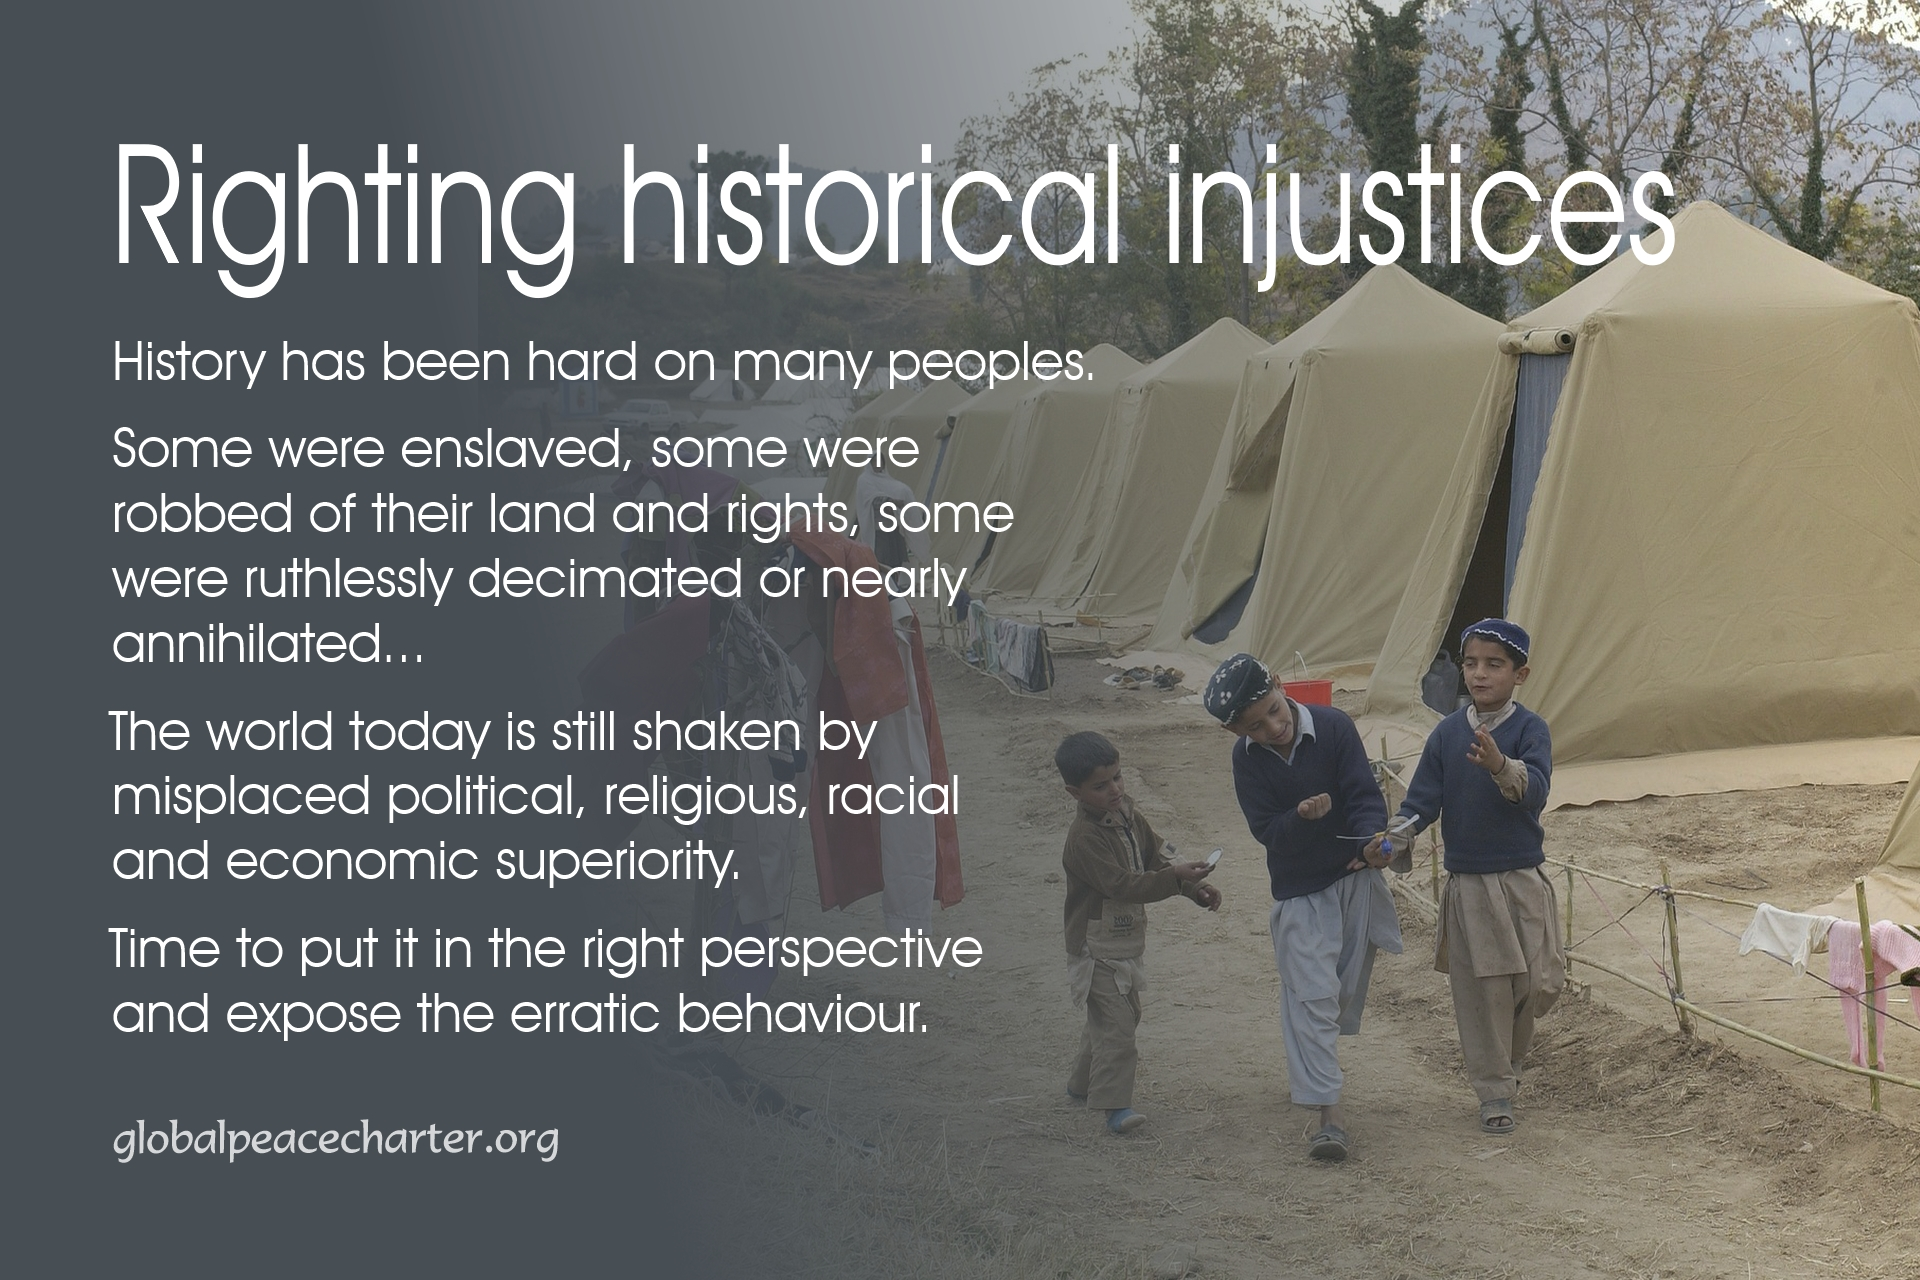 Righting historical injustices